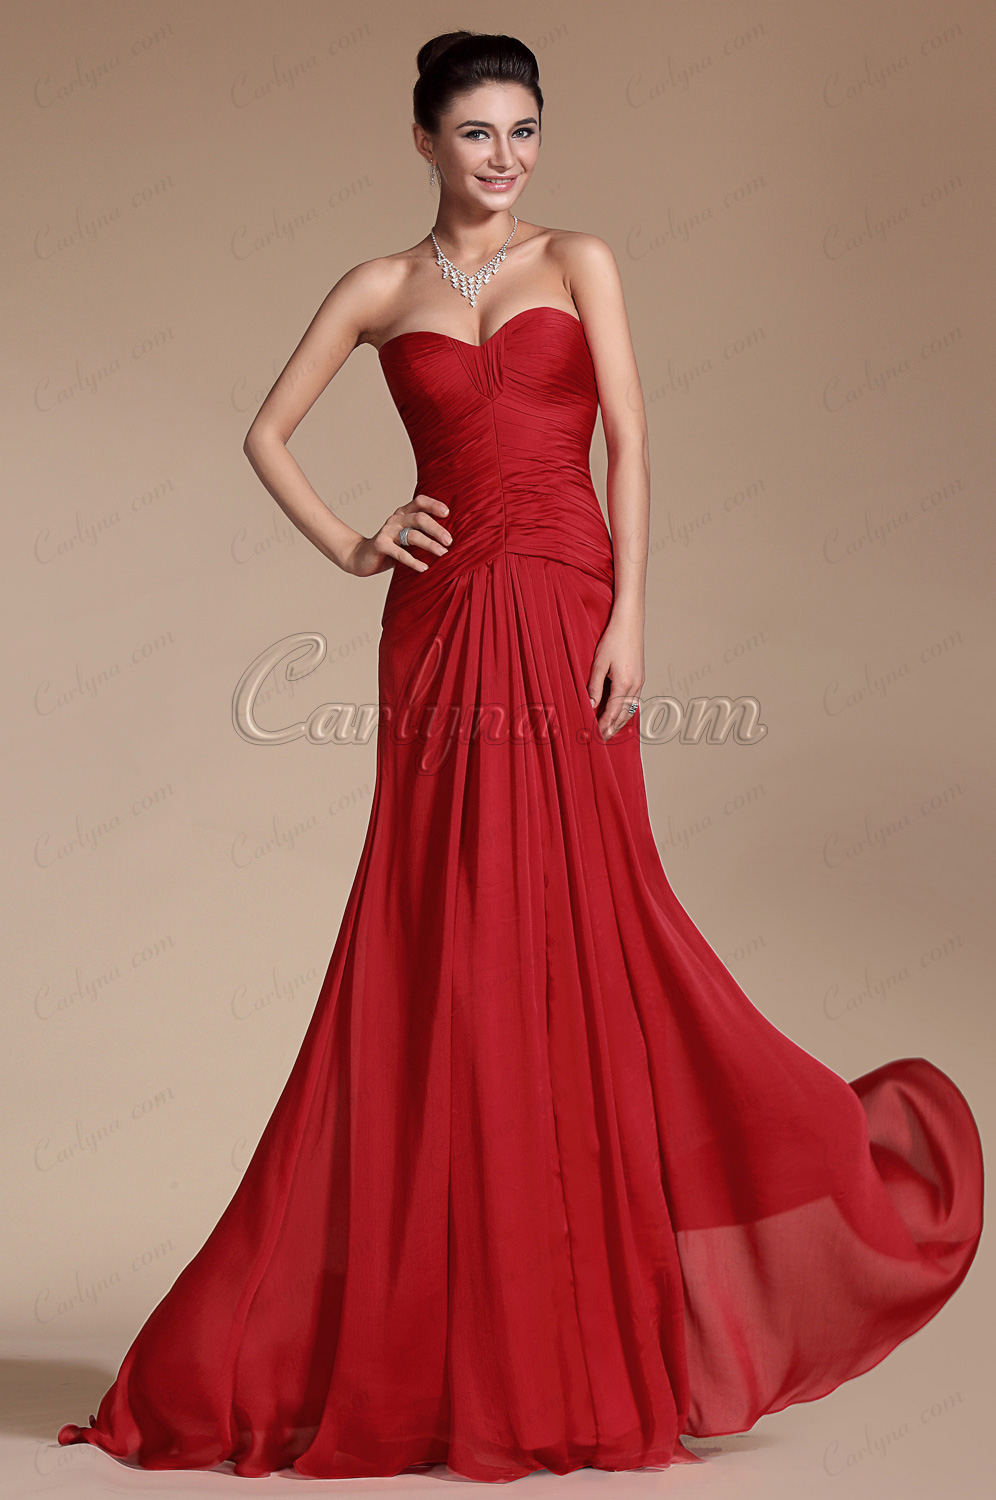 Red Simple Sweetheart Evening Dress Bridesmaid Dress (C00143802)